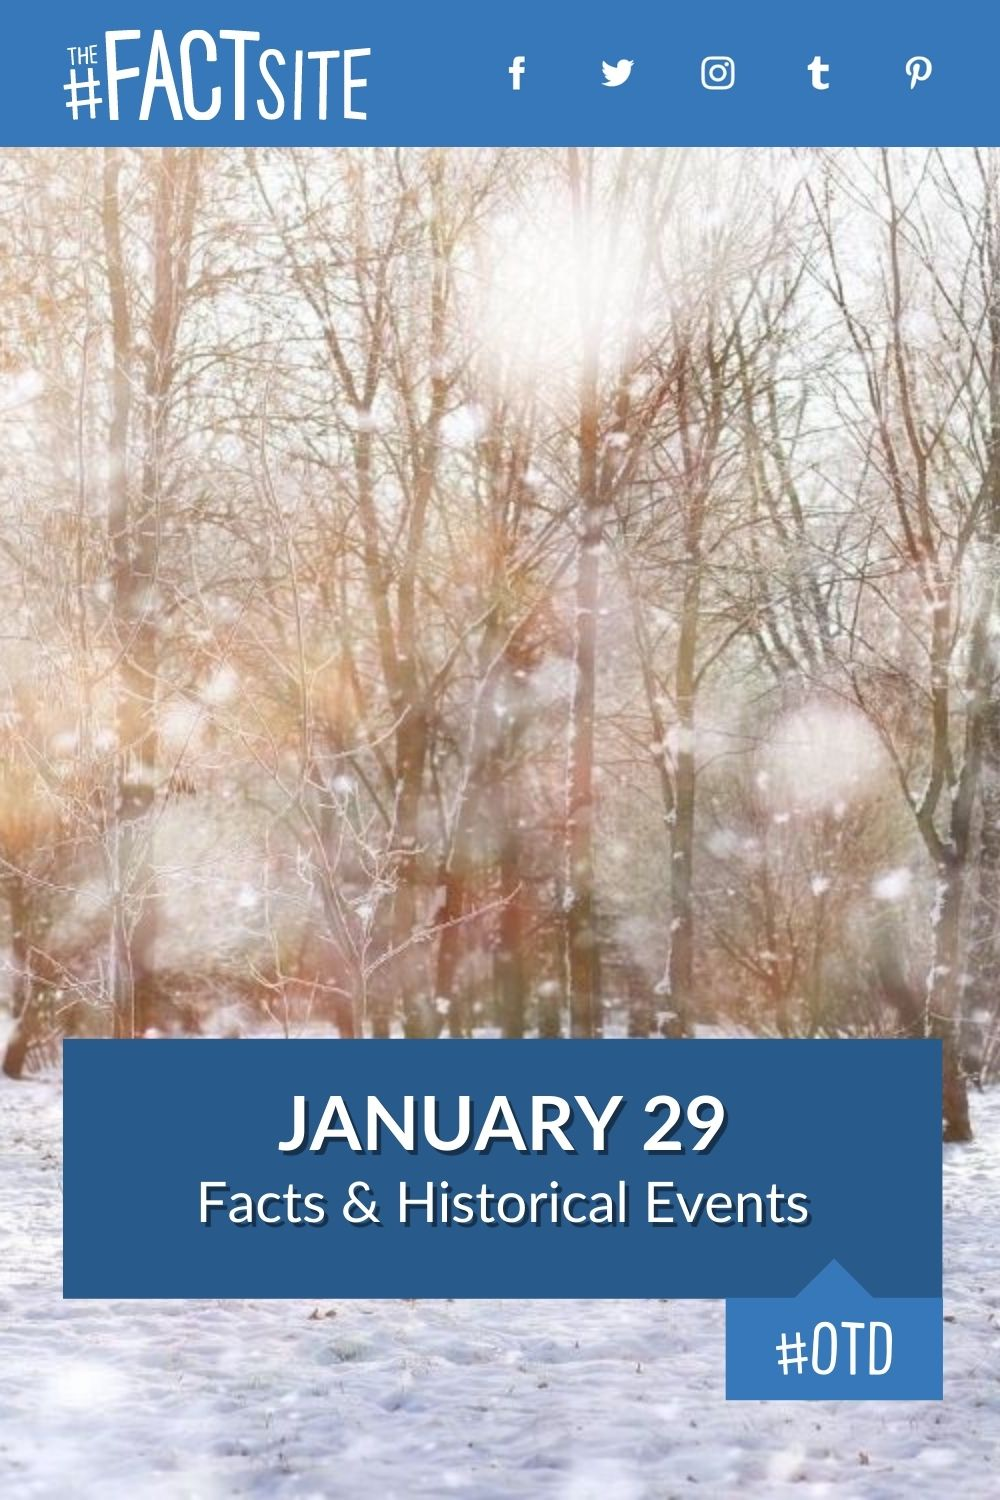 Facts & Historic Events That Happened on January 29